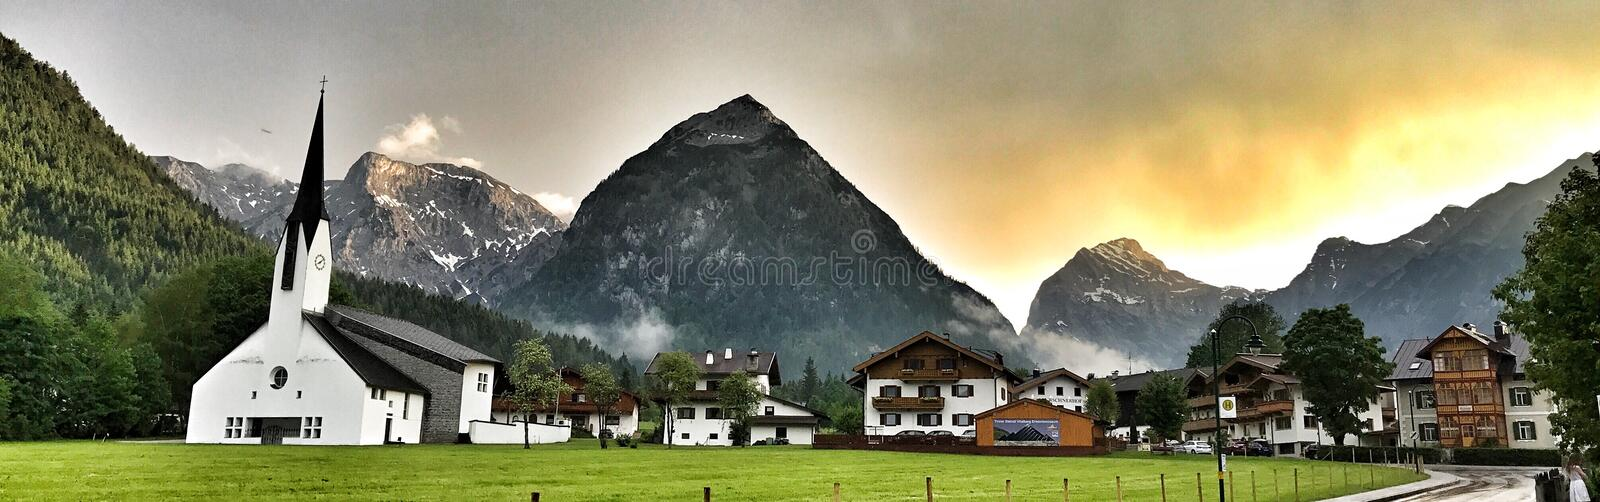 Pertisau village at the Alps in Tyrol, Austria royalty free stock image